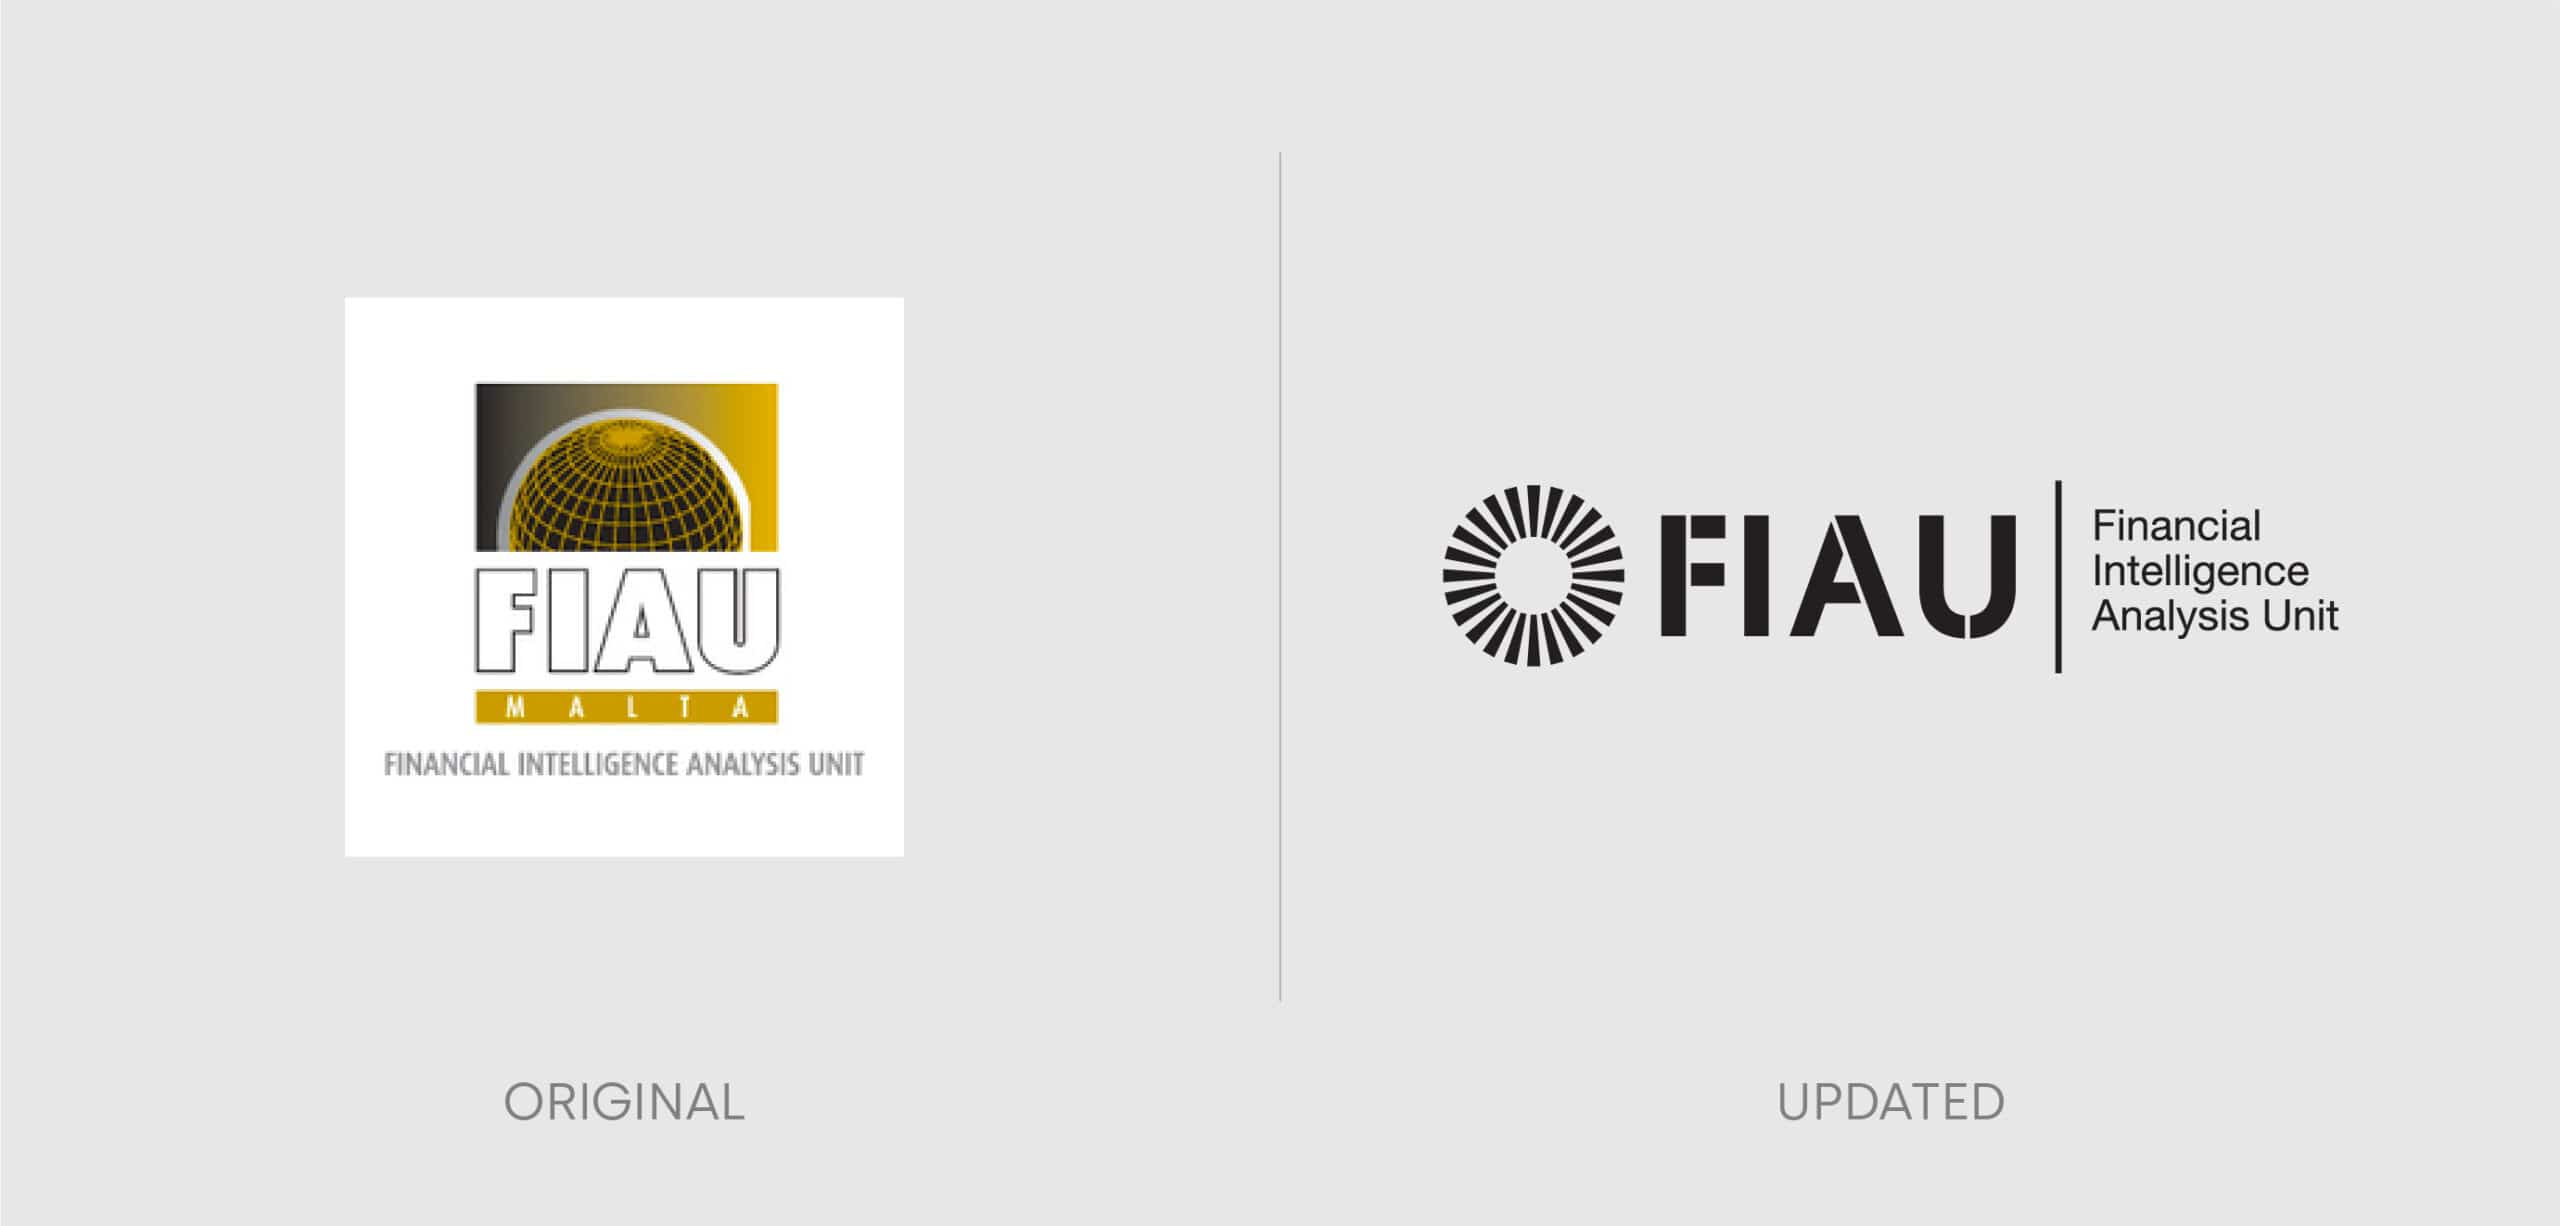 FIAU Case Study logo comparison